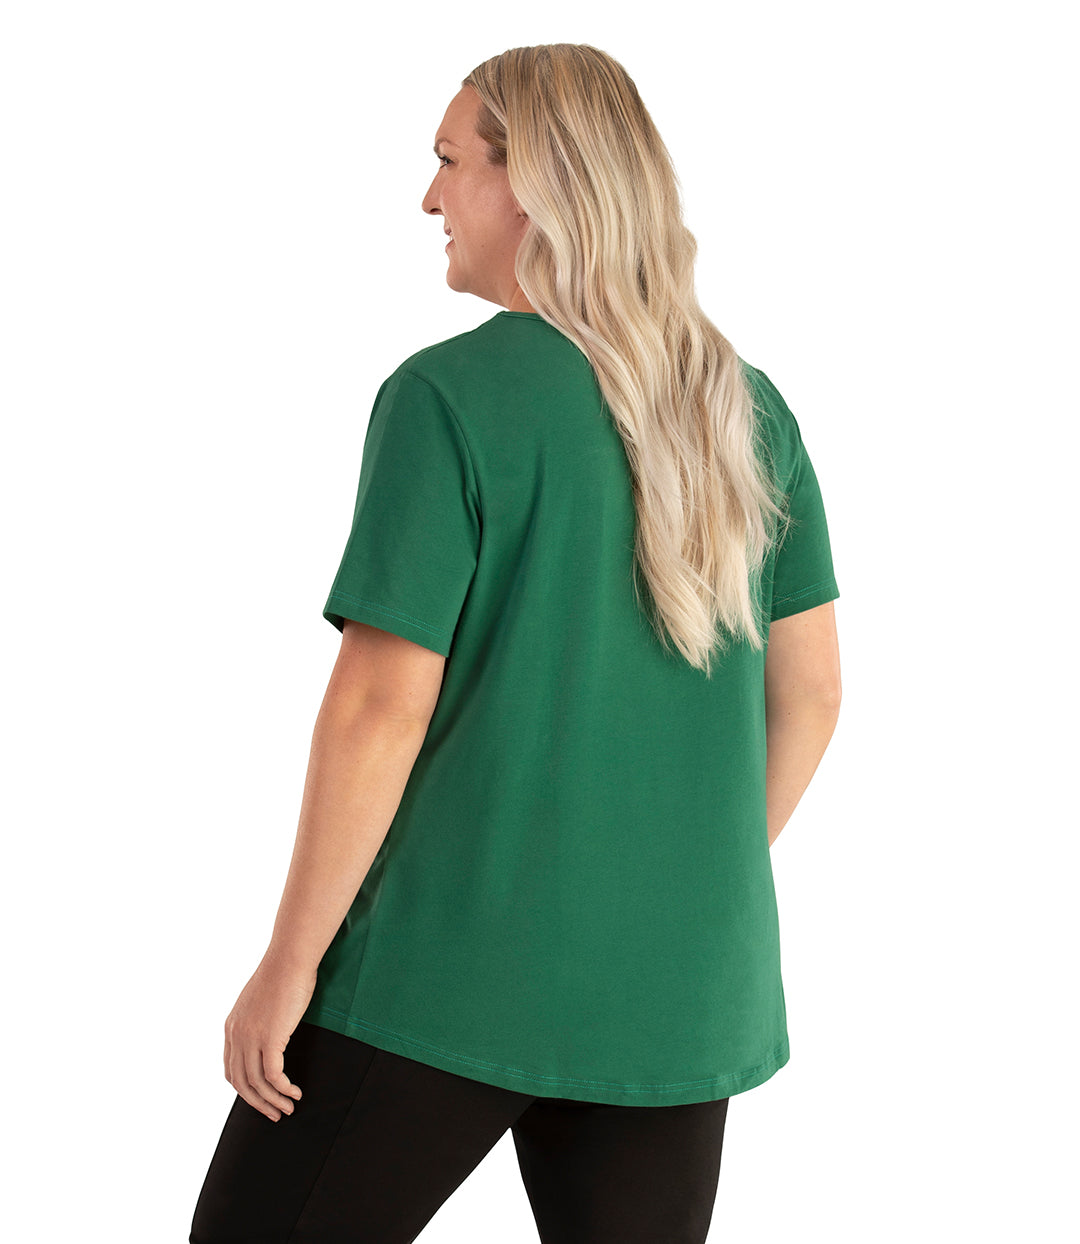 Stretch Naturals Lite Short Sleeve Scoop Neck Top Classic Colors-Tops Short Sleeve-Hop Wo Trading Co Ltd-XL-Forest Green-JunoActive